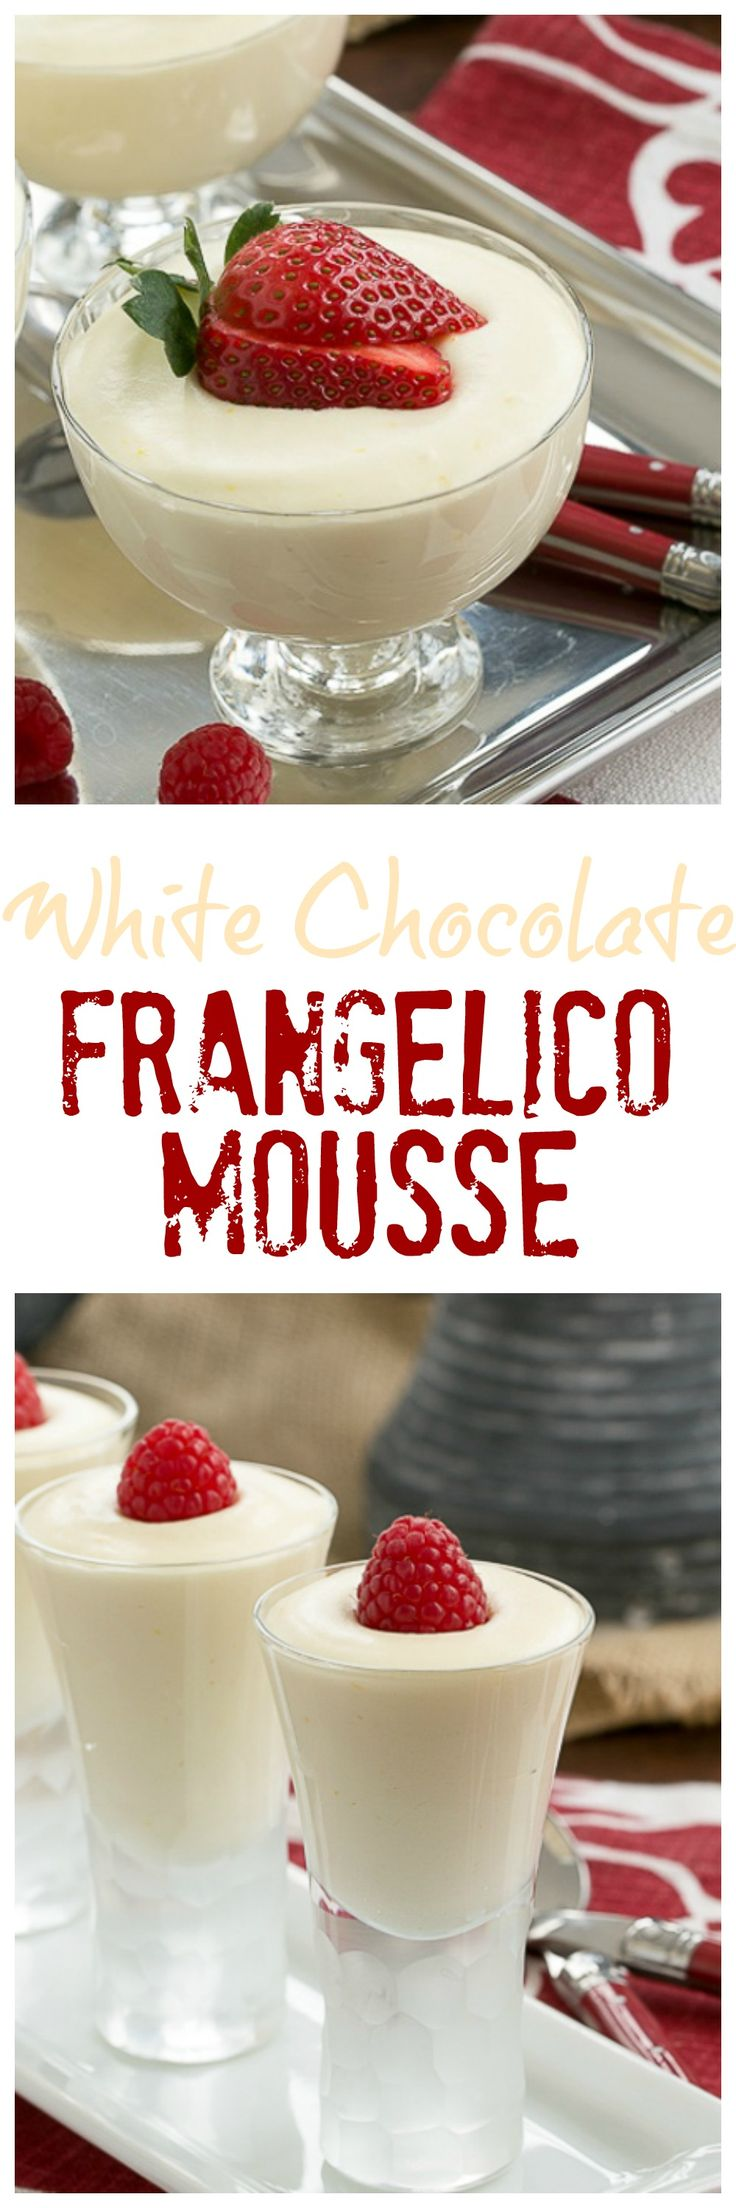 Dreamy White Chocolate Mousse spiked with Frangelico